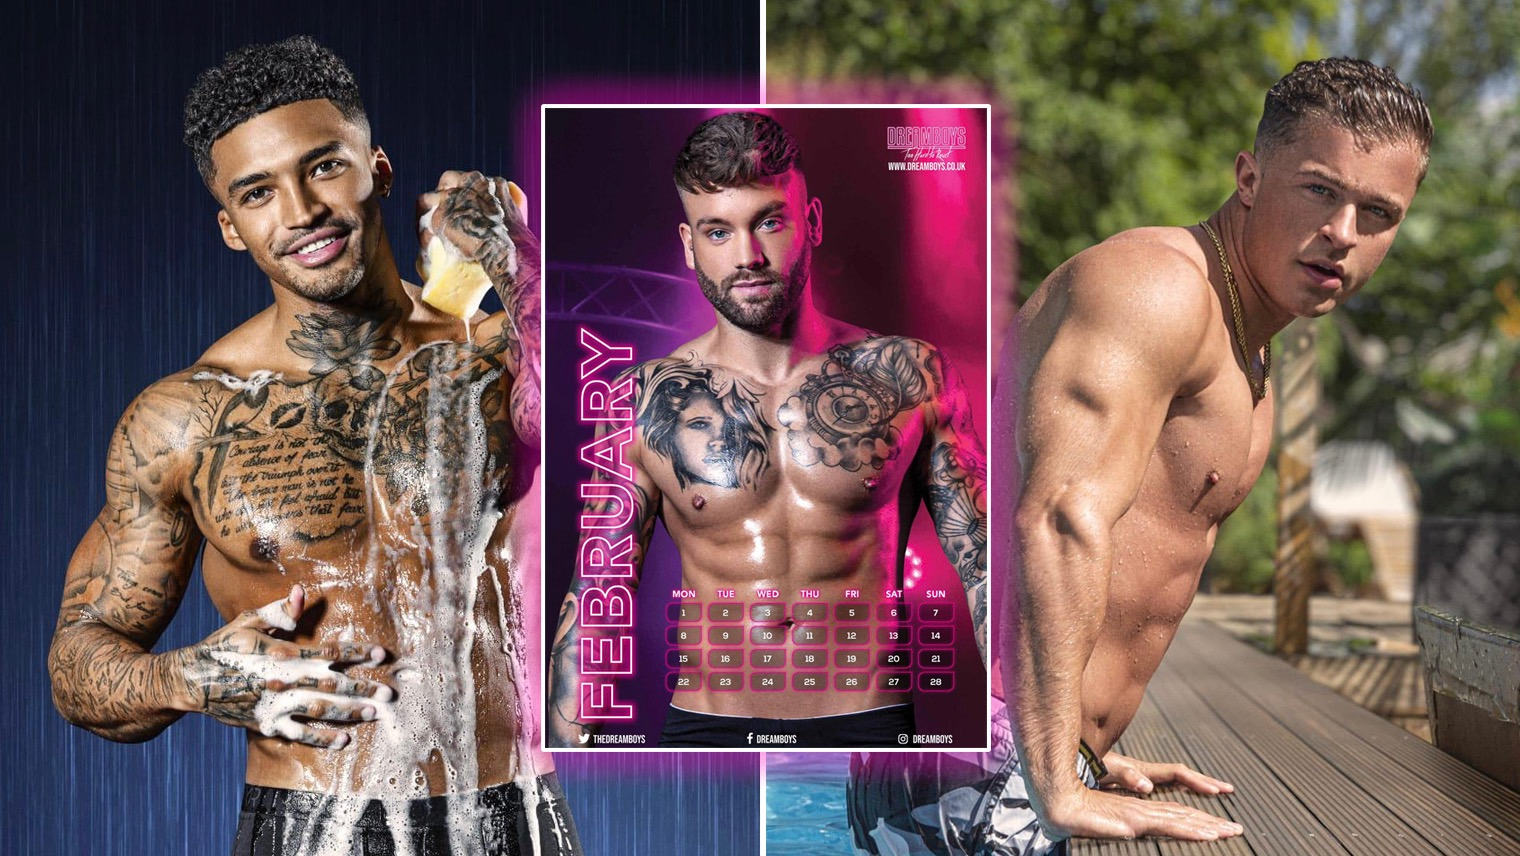 male strip show blog | Dreamboys 2021 calendars: The perfect gift to give this Christmas